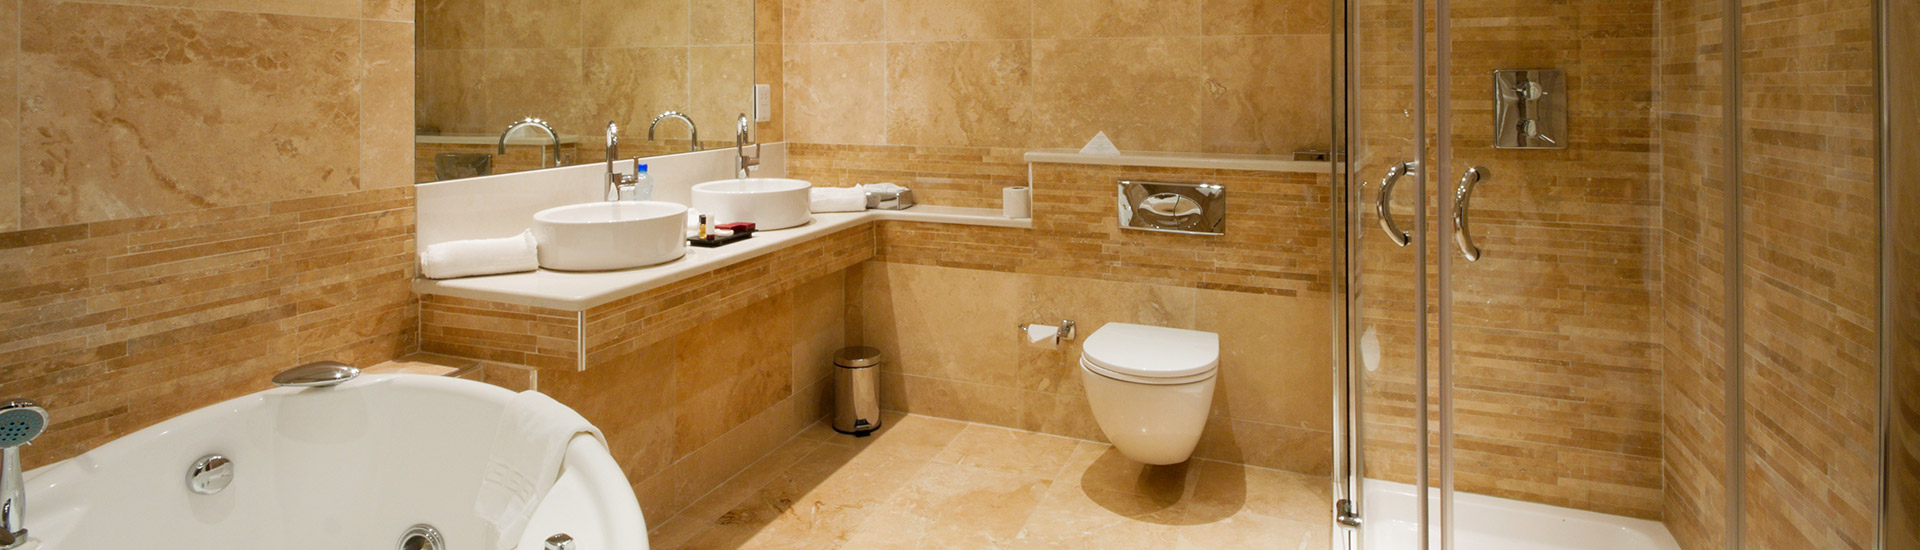 Custom Bathroom Vanities Renovations In Las Vegas Paradise - Bathroom remodeling las vegas nv